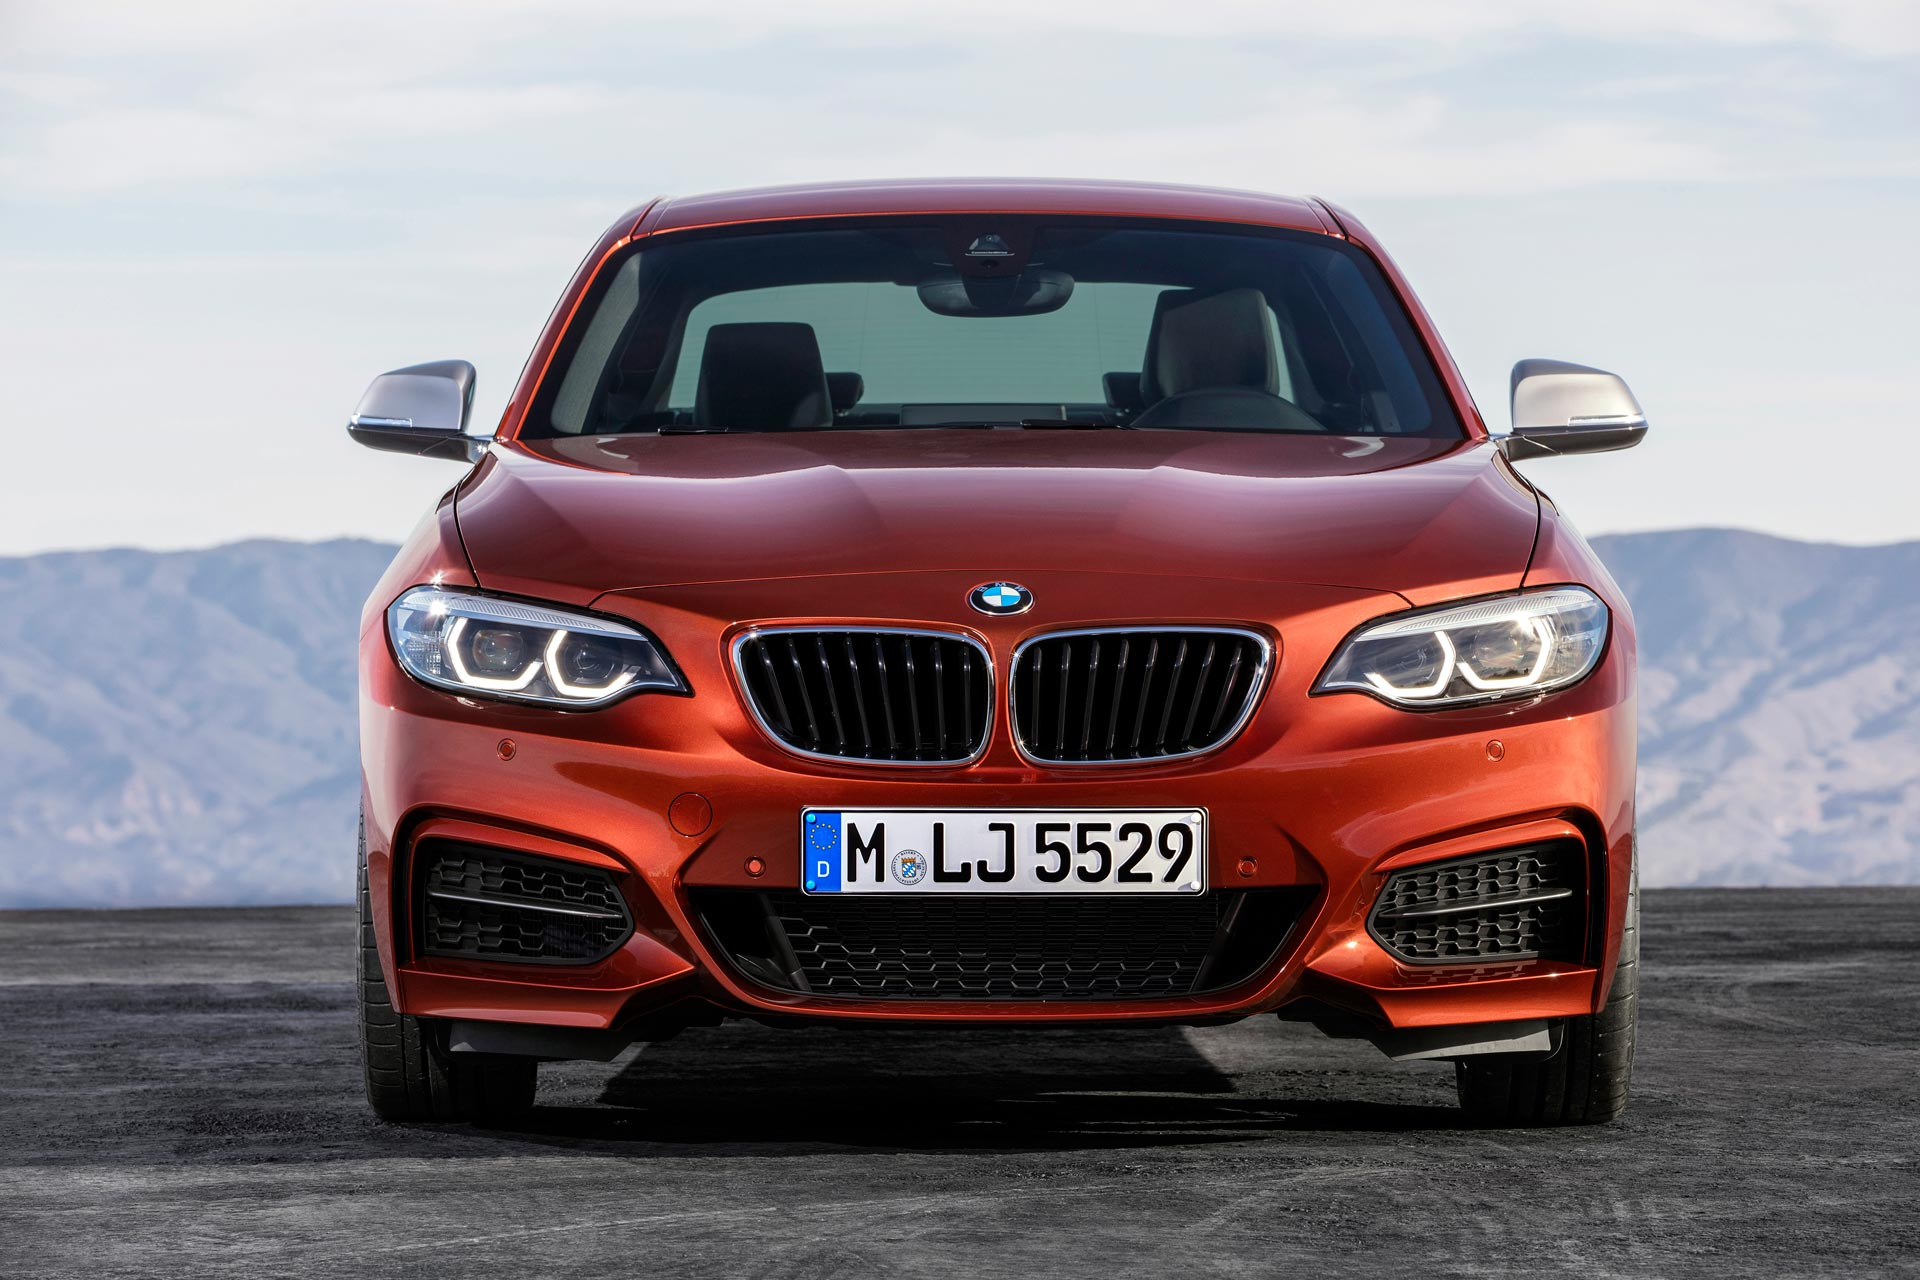 Bmw 2 series coupe and convertible facelift unveiled autodevot - Bmw 2 series coupe xdrive ...